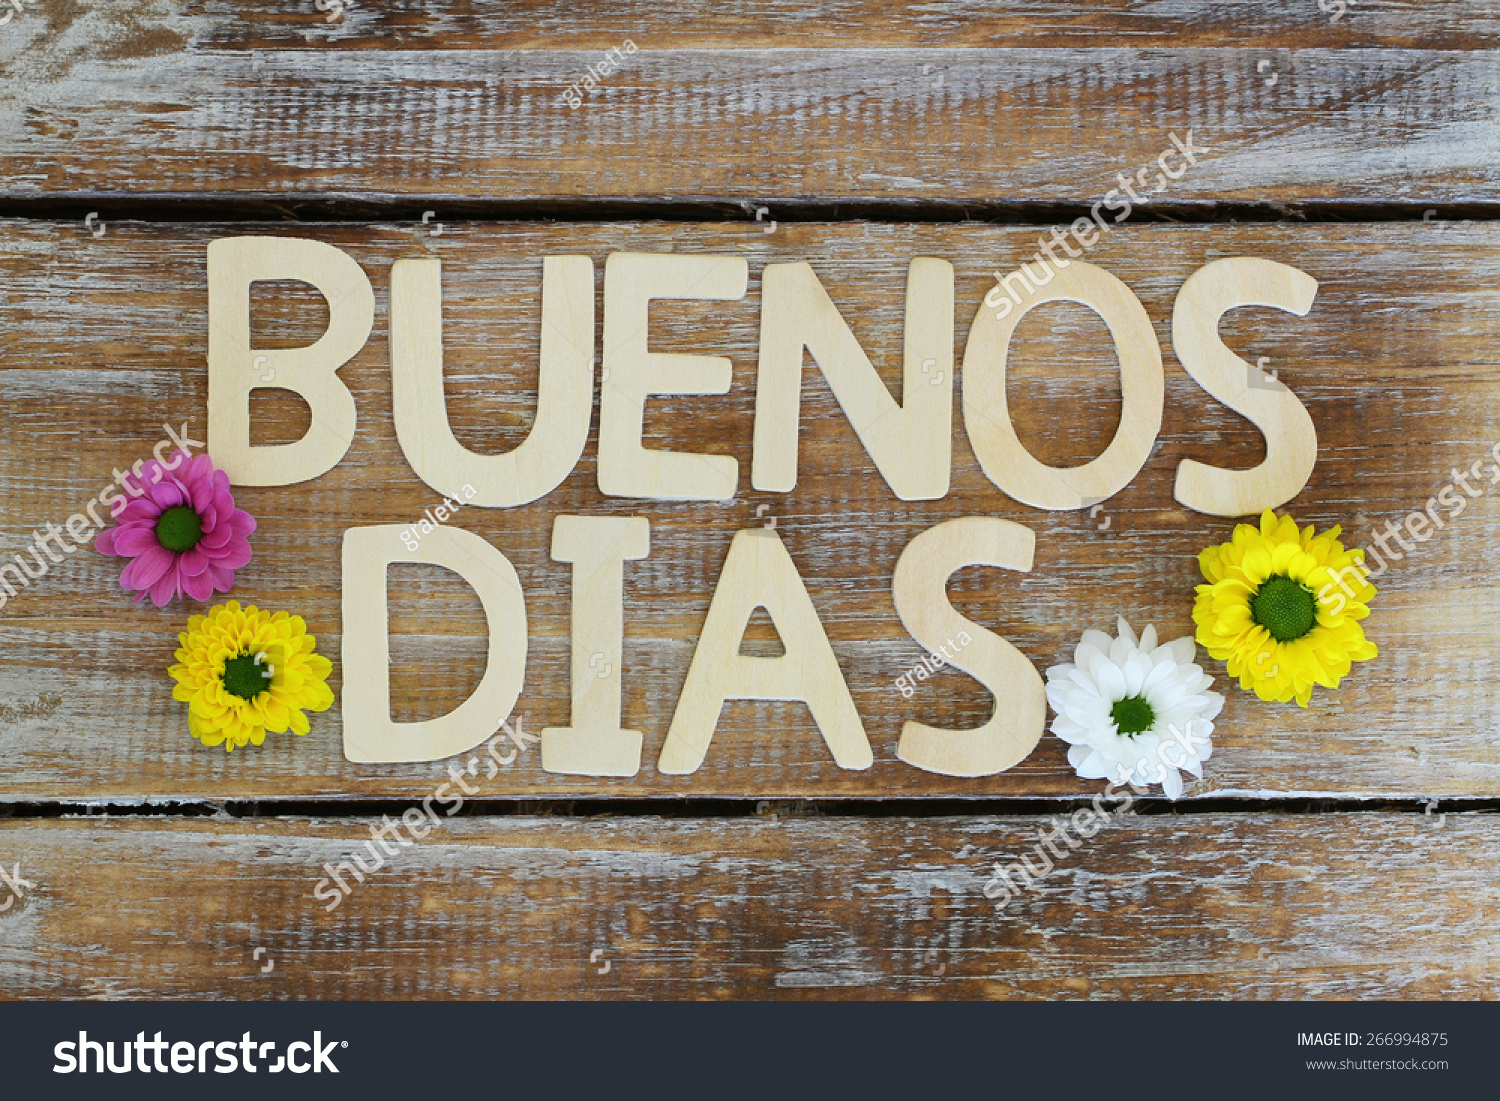 Good Morning In Spanish Is What : Buenos dias good morning in spanish written with wooden